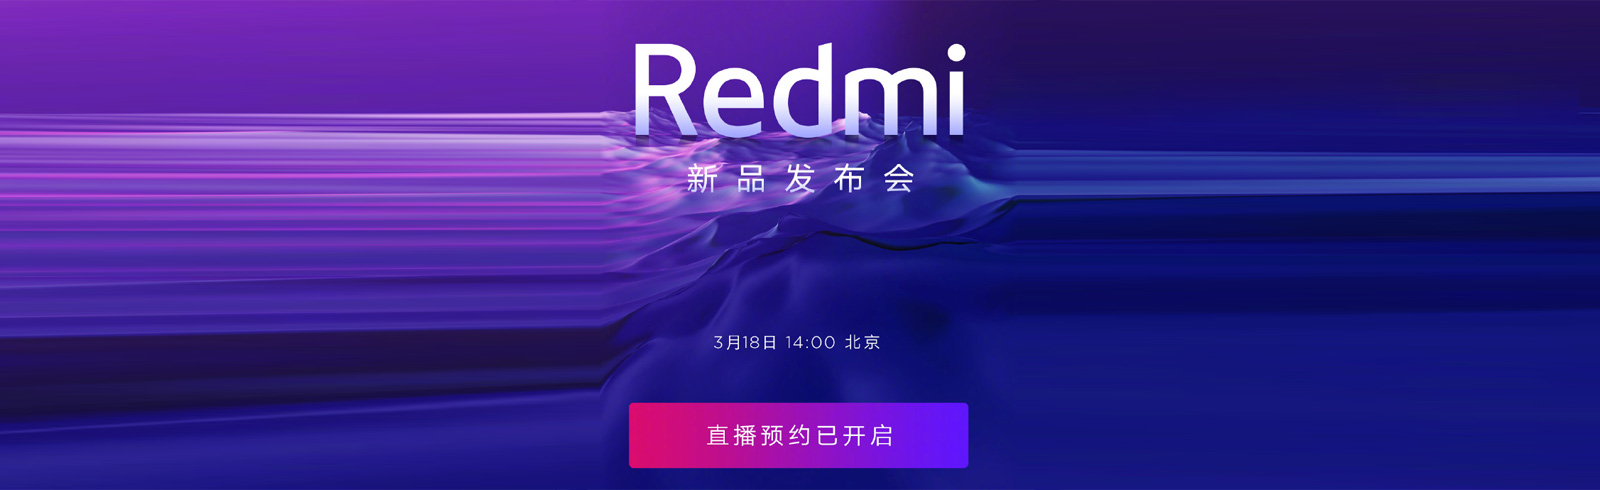 Redmi 7 will be launched on March 18th